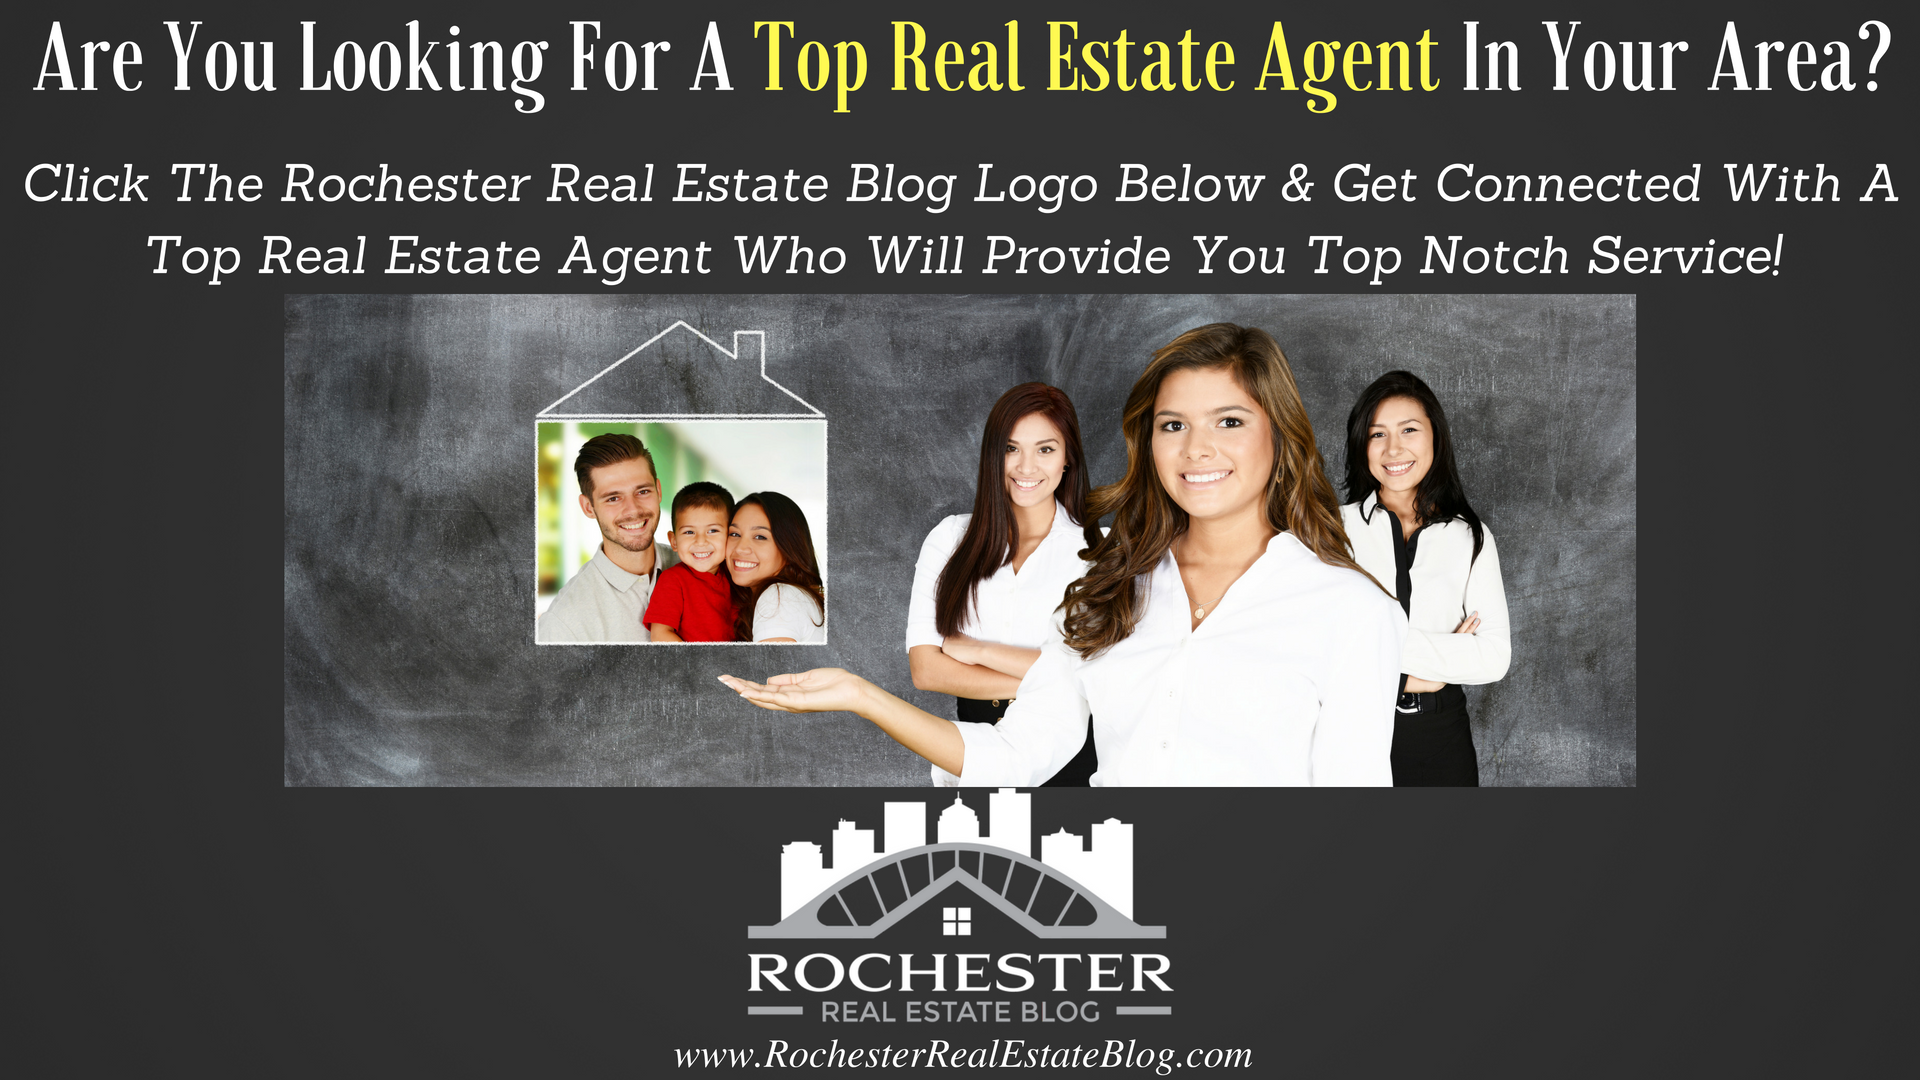 Are You Looking For A Top Real Estate Agent In Your Area